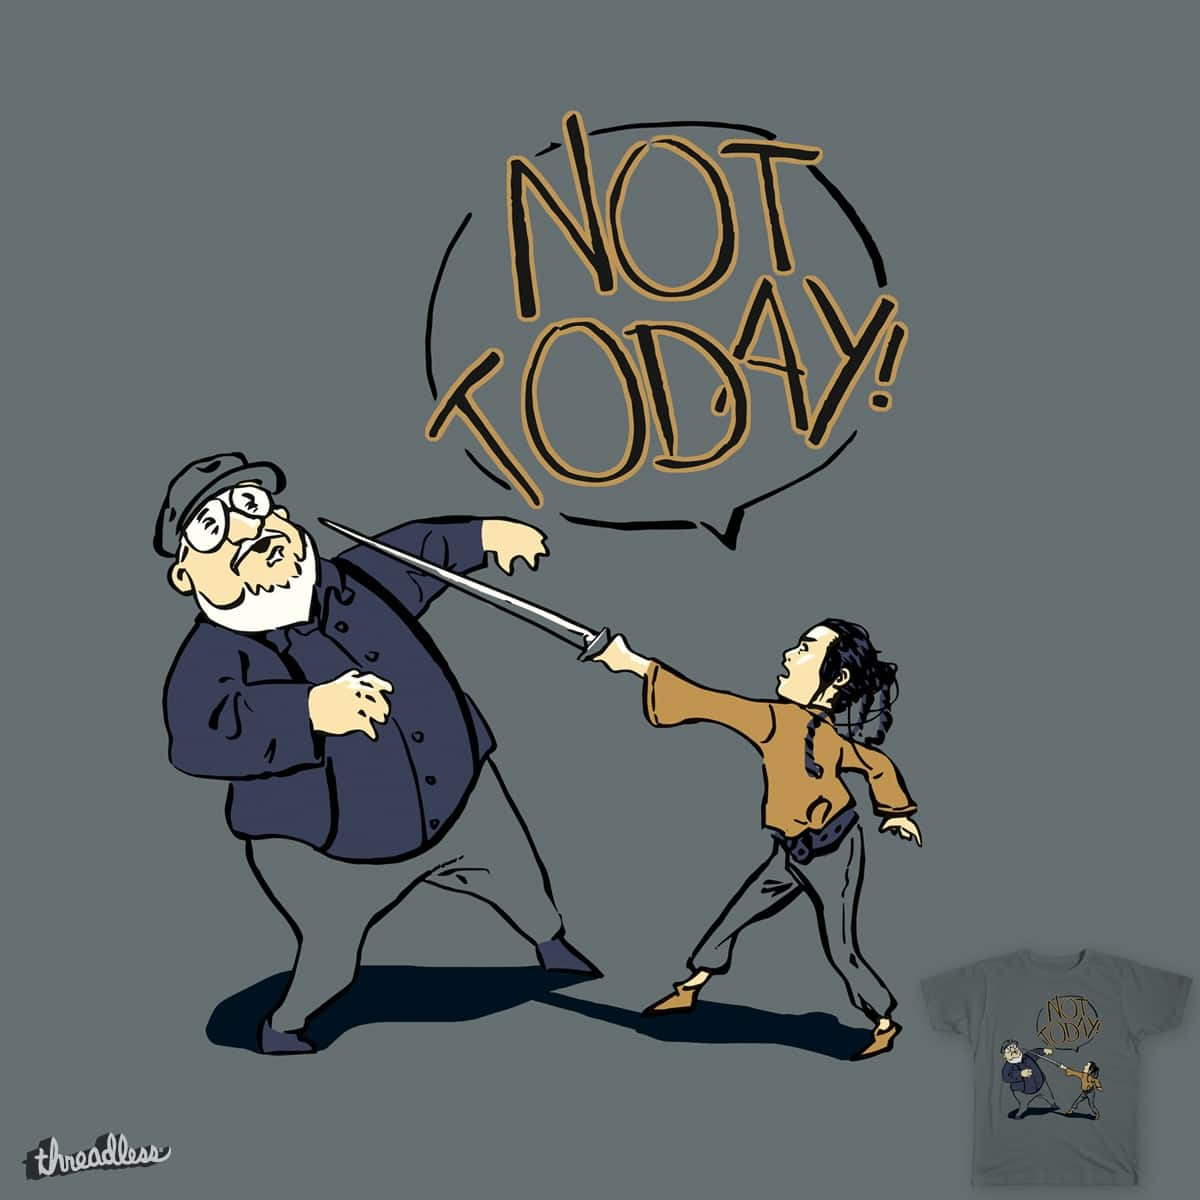 Not today! by fabiofeliciojr on Threadless